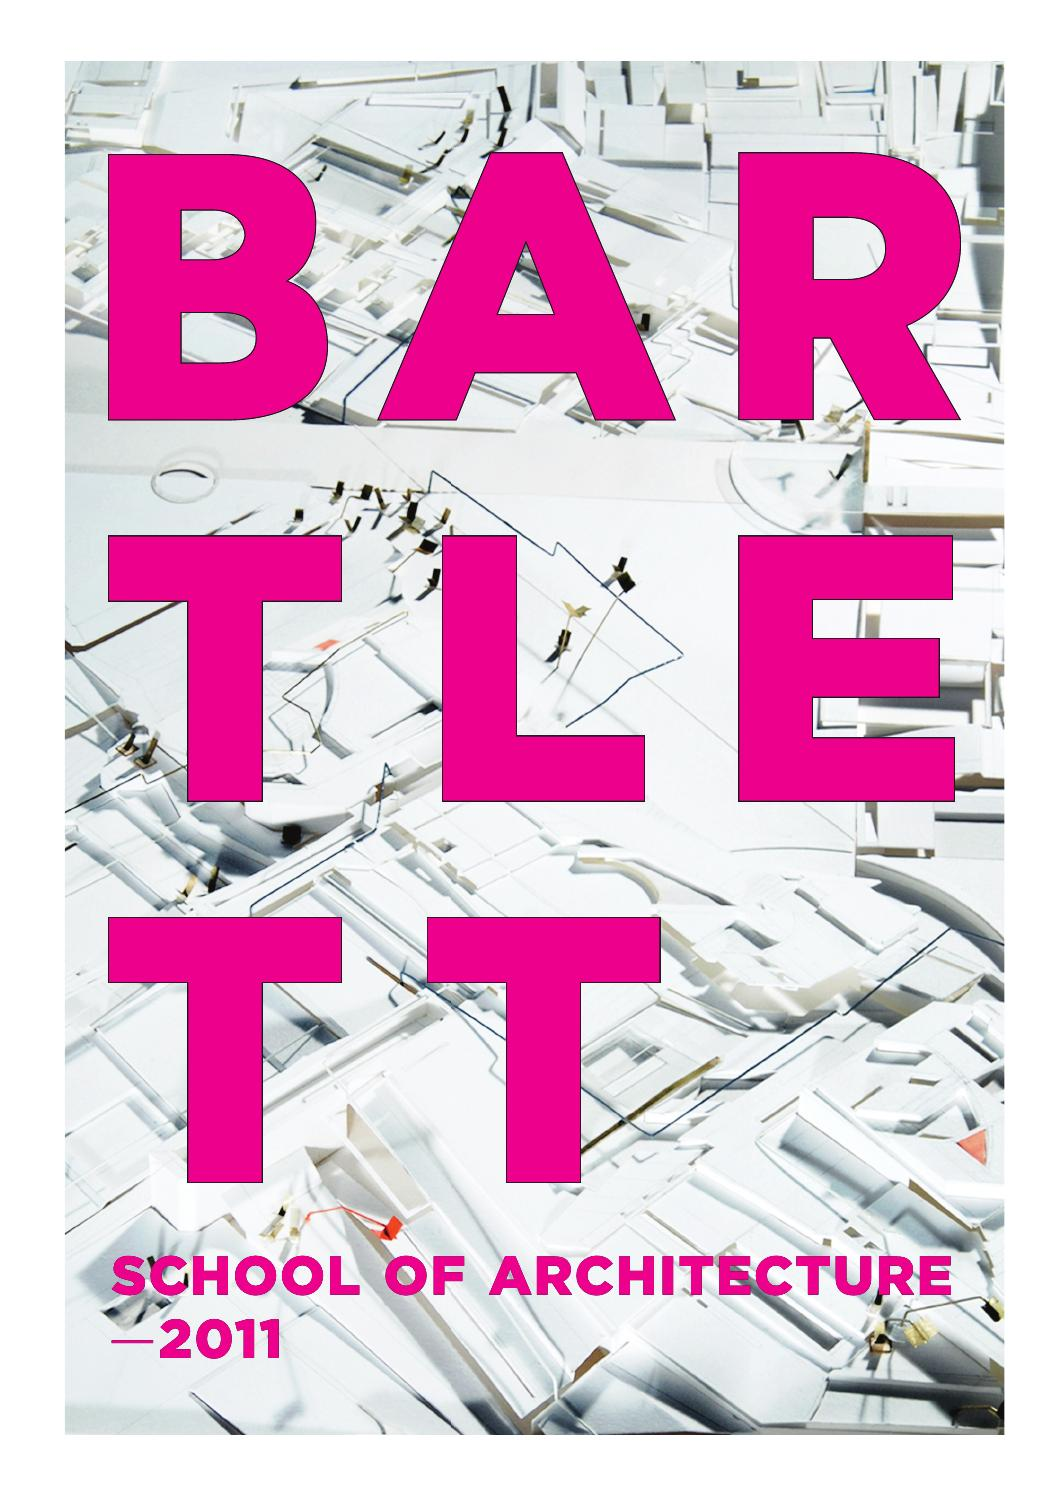 Lilley Tile And Stone Llp bartlett school of architecture catalogue 2011the